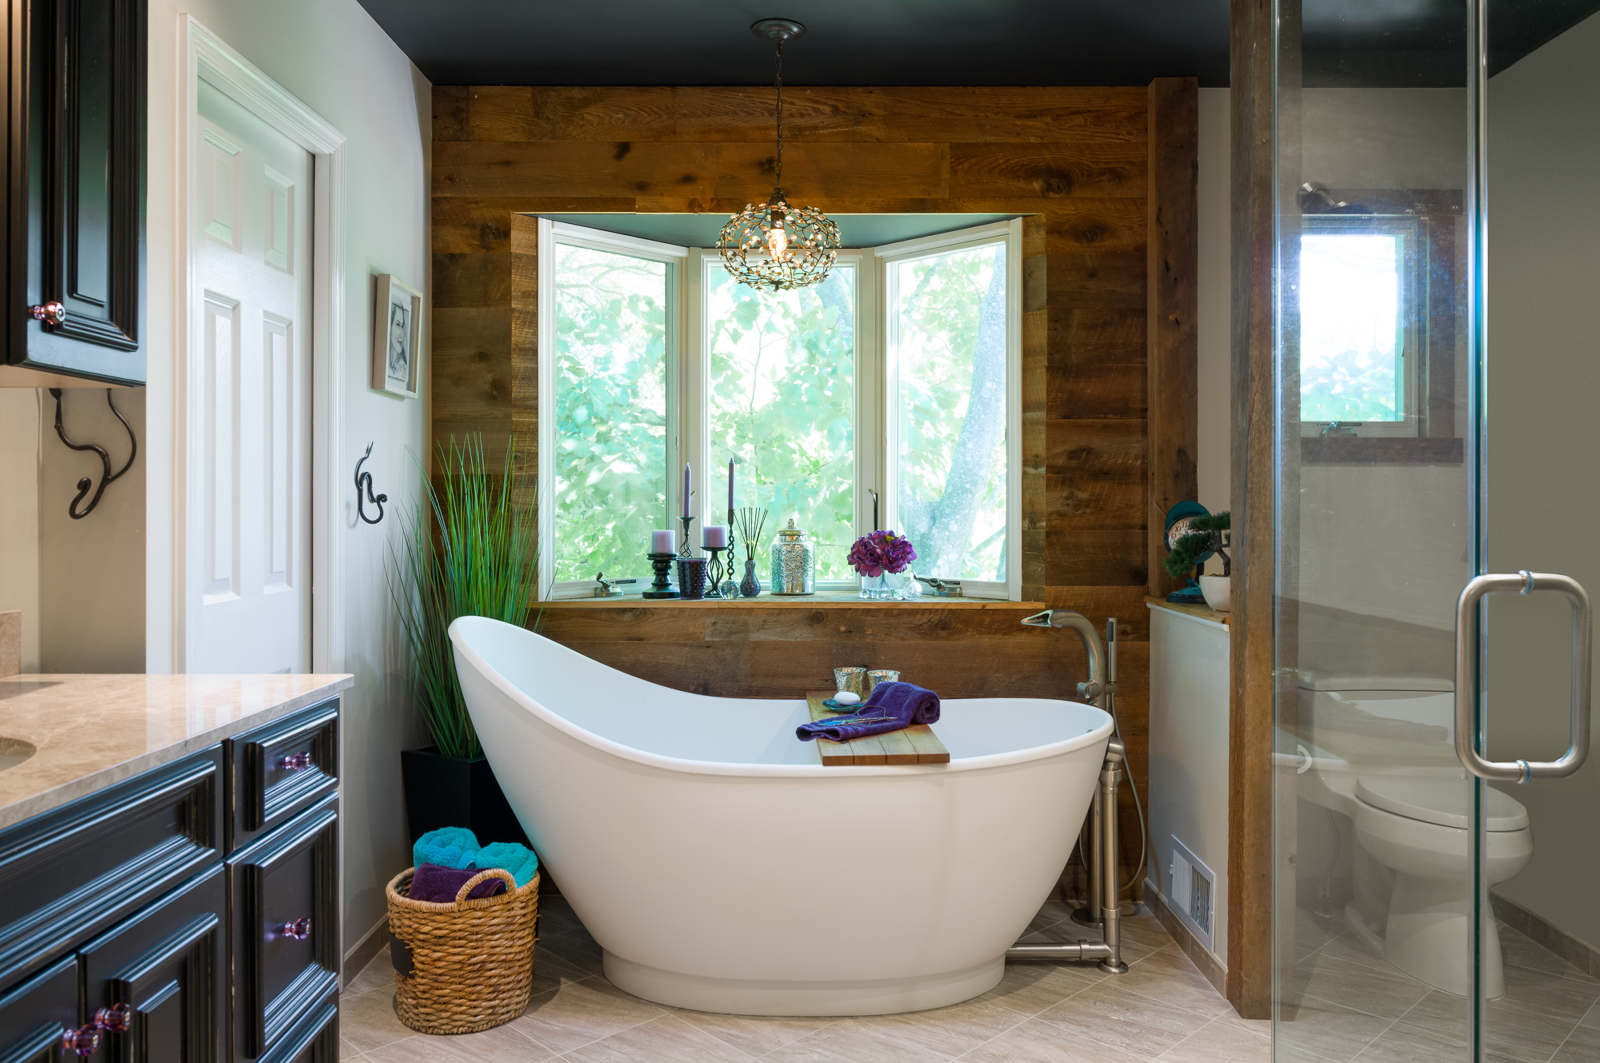 After  - Modern tiles are mixed with reclaimed wood to add texture and the perfect backdrop for the gorgeous tub. We also incorporated a black ceiling,small accents of purple and turquoise (our clients' favorite colors) and a little bling aka the mini chandelier.